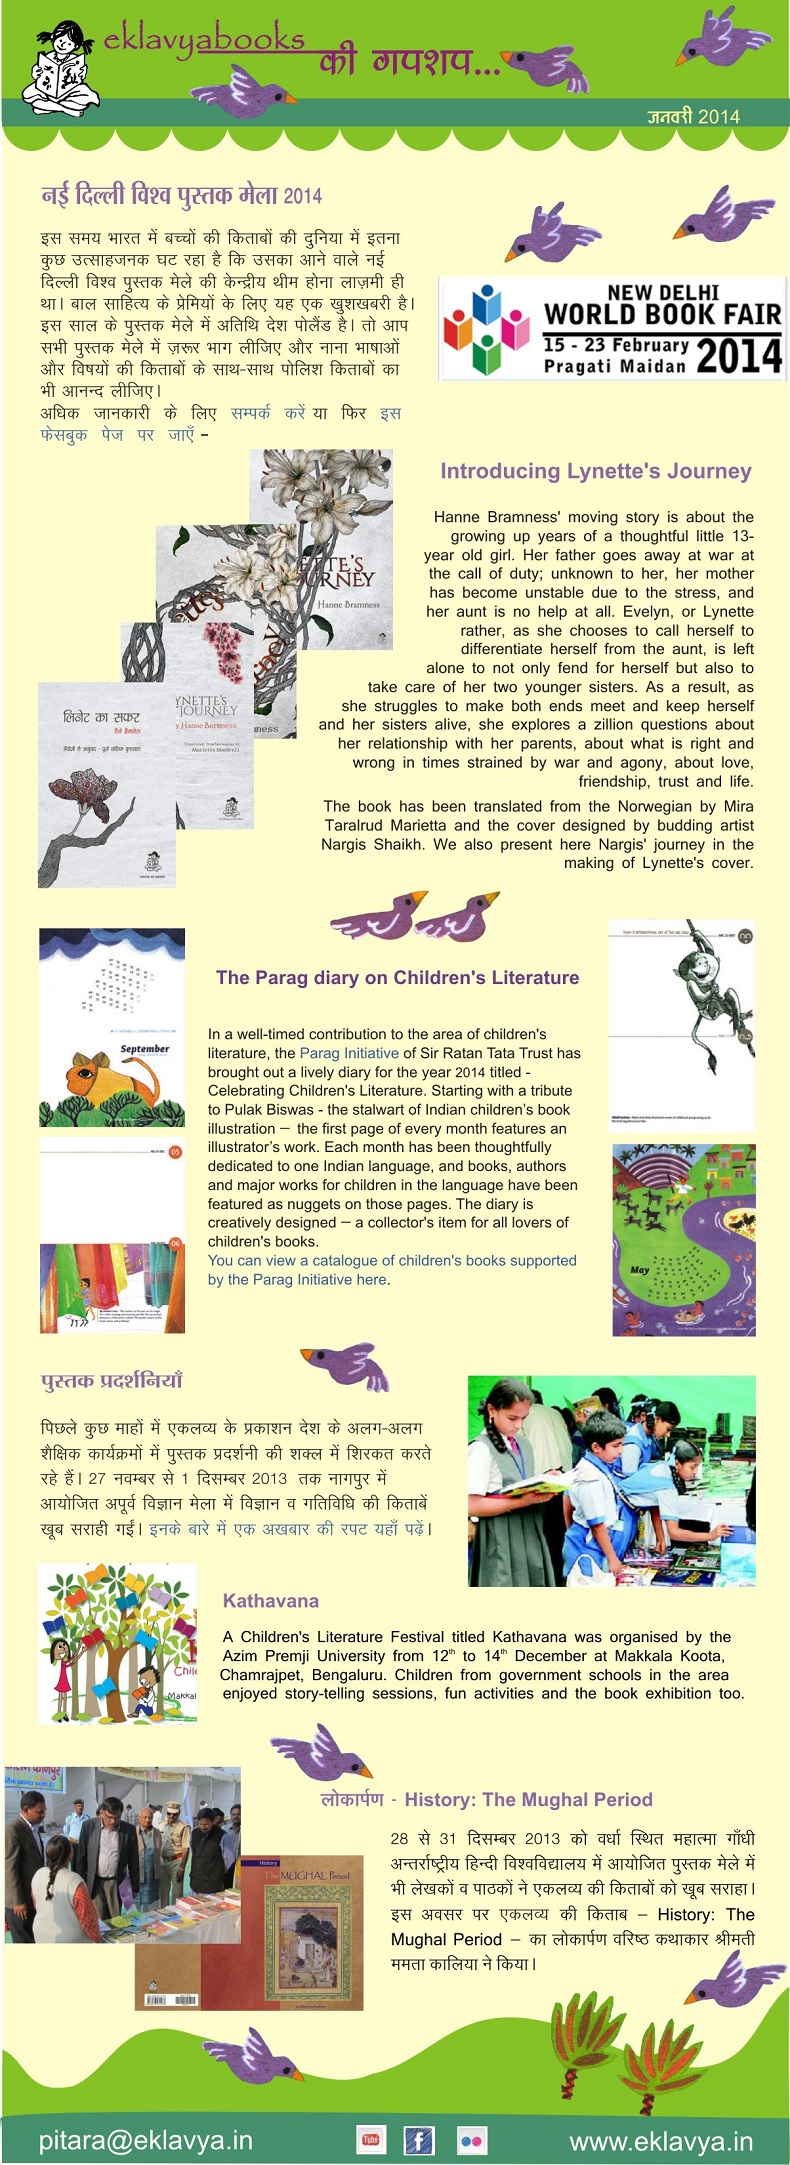 eklavyabooks ki gupshup - January 2014. Enable image for viewing newsletter